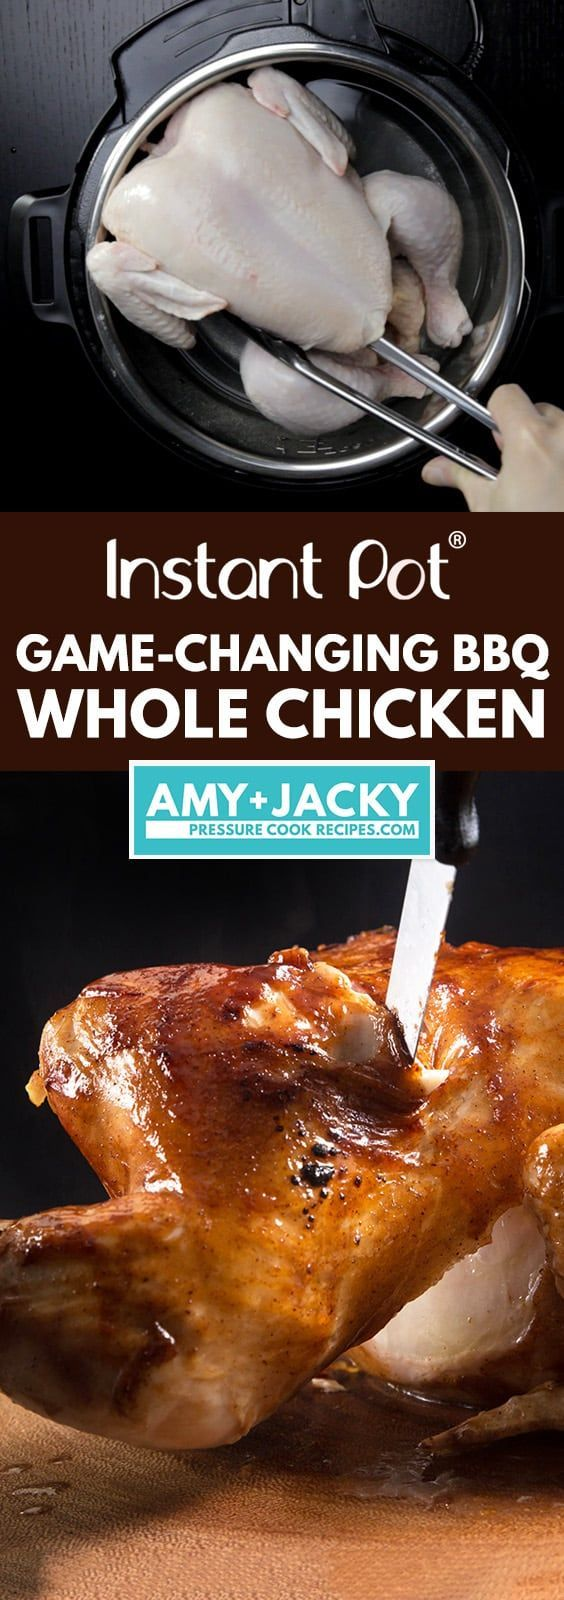 Make this 4-ingredient Game-Changing Instant Pot BBQ Whole Chicken Recipe (Pressure Cooker Whole Chicken) in 3 Easy Steps! Tender